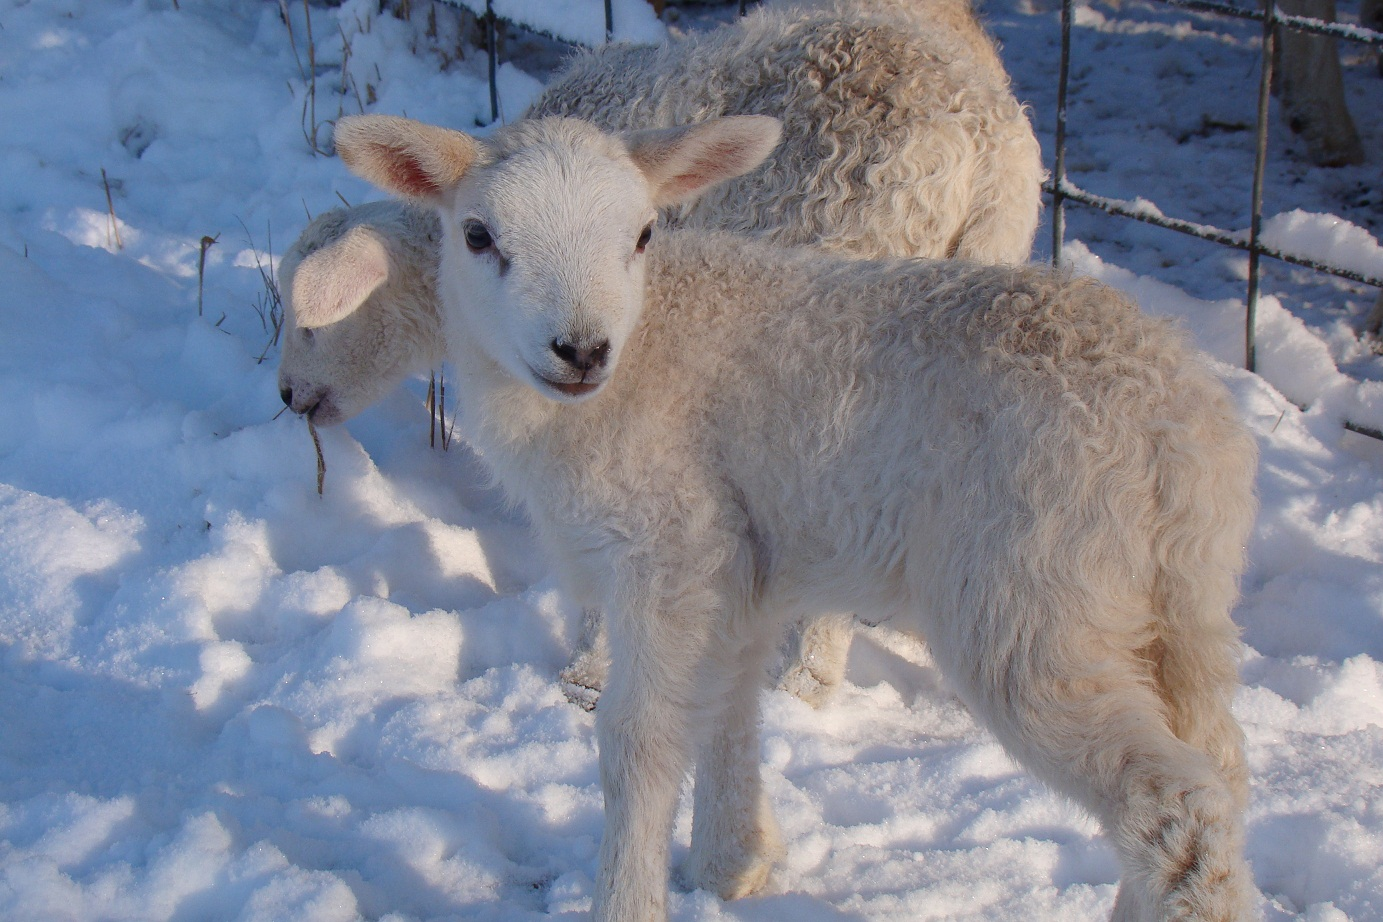 https://missingwillowfarm.files.wordpress.com/2012/02/snow-lamb.jpg